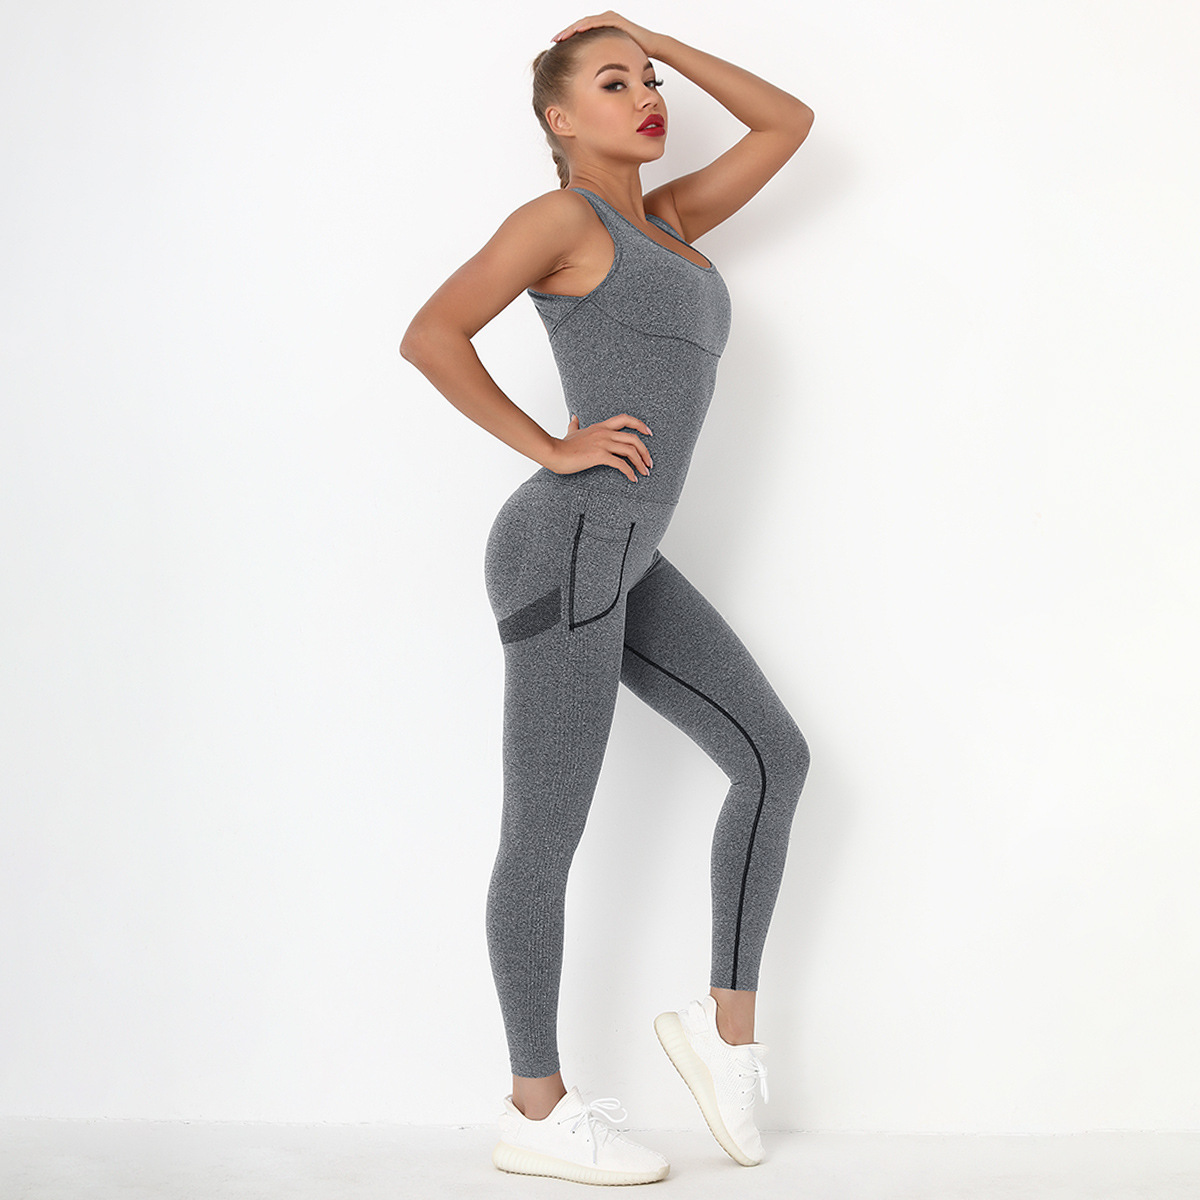 Cross Strapped Backless Sports Jumpsuit NSNS48417